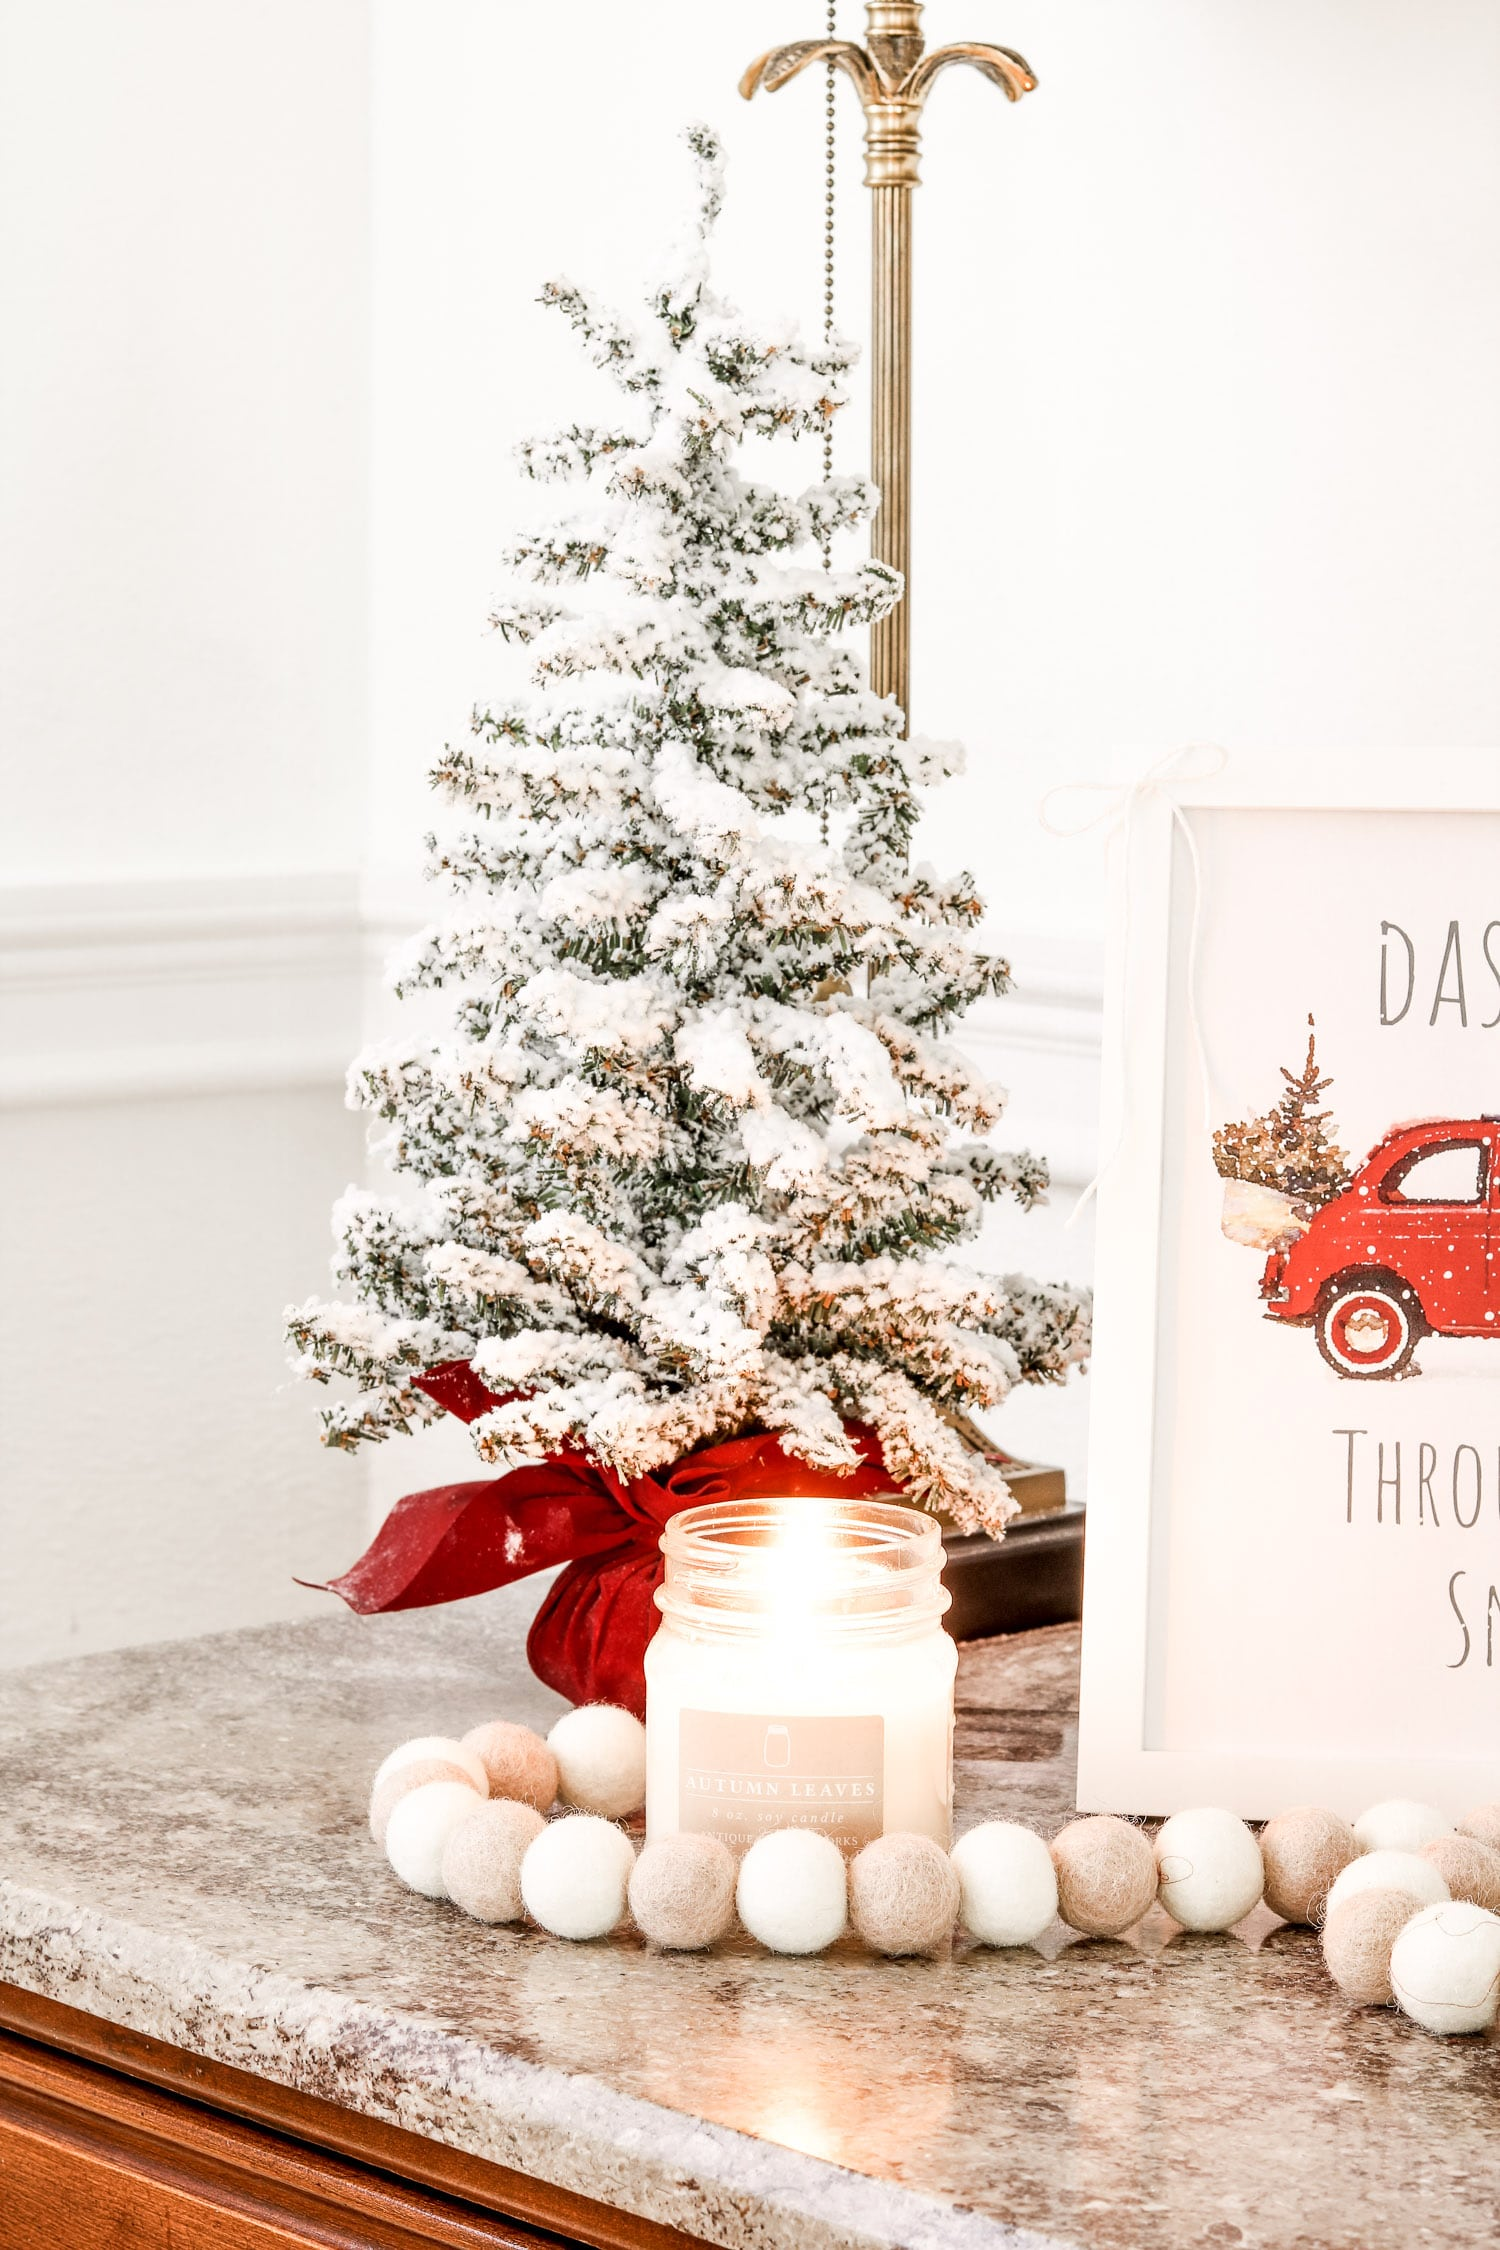 Christmas printable decor displayed with flocked tree, candle and felt beads